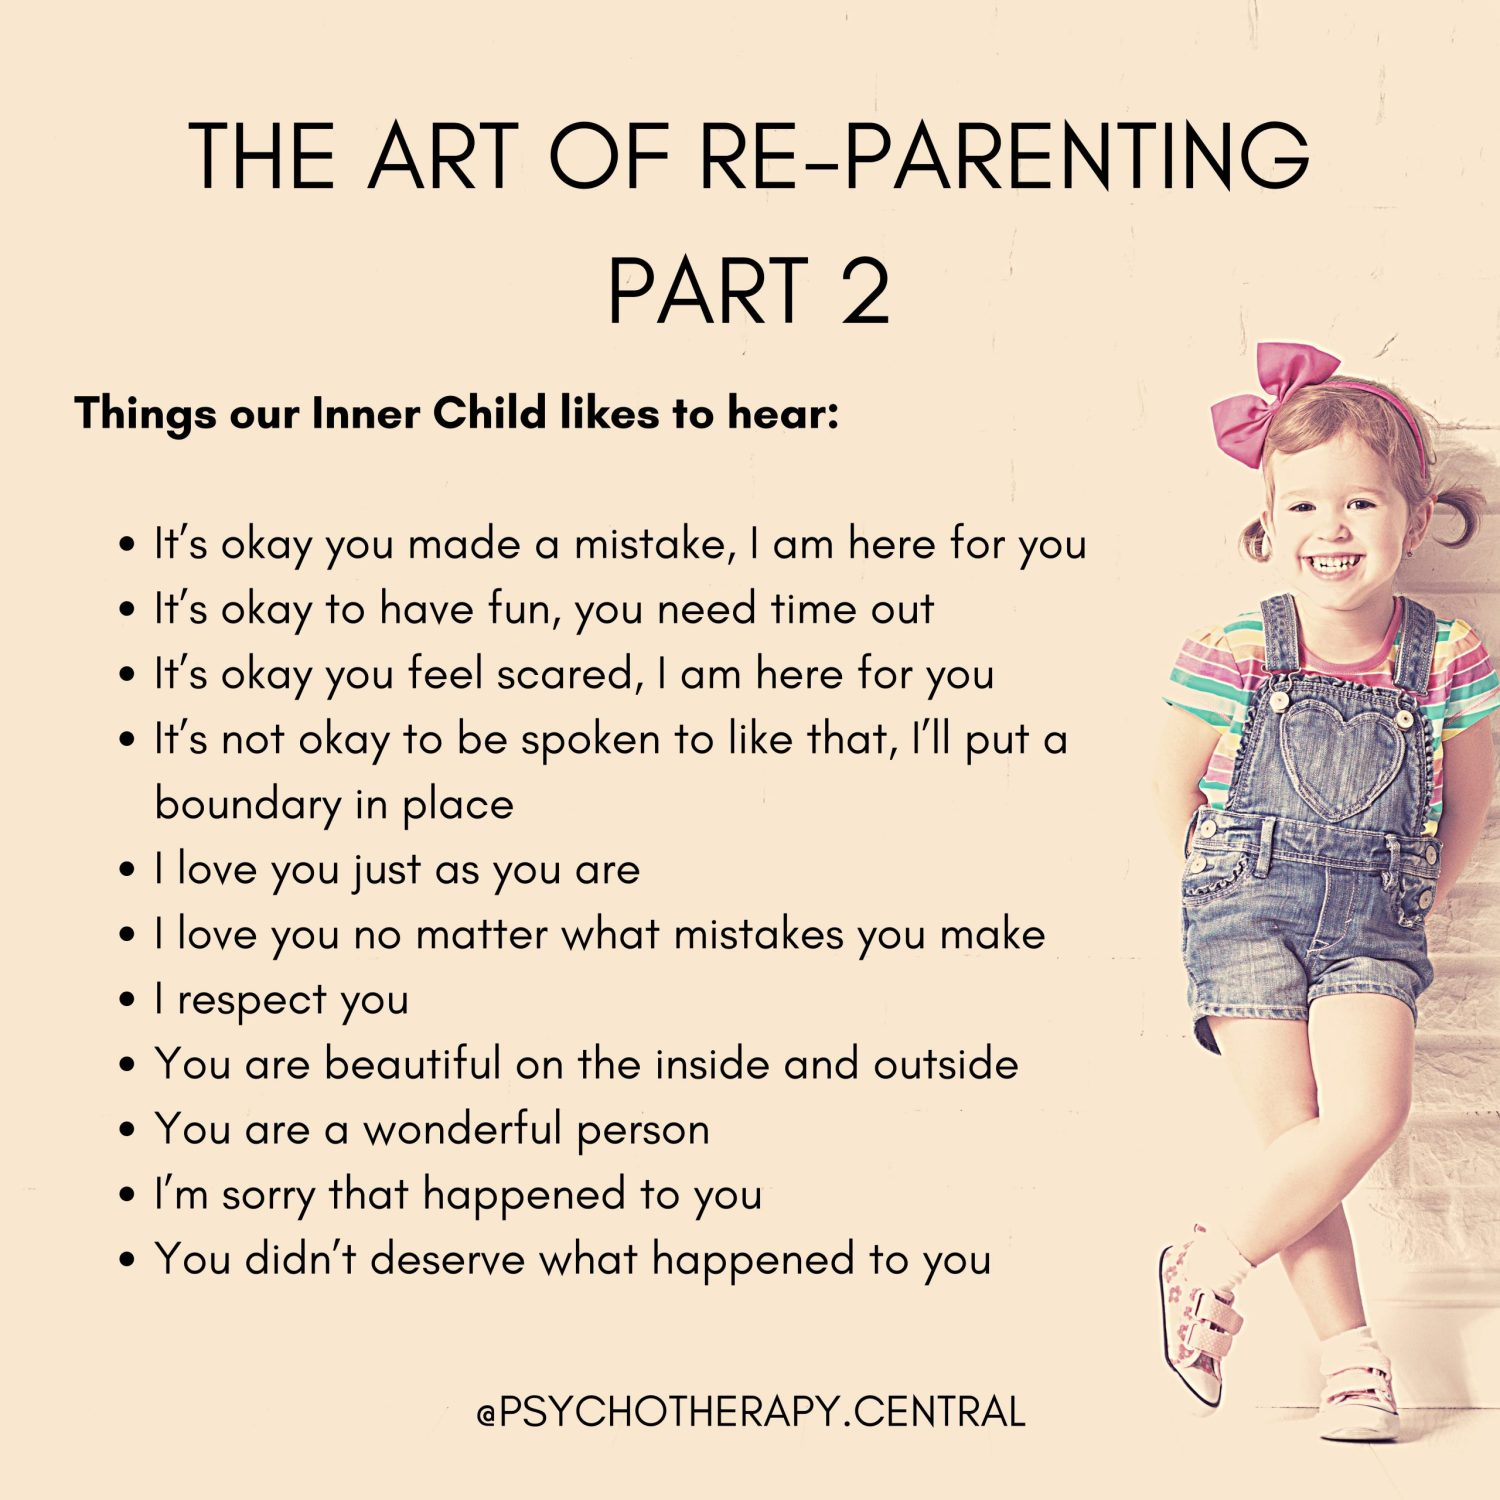 The Art of Re-Parenting